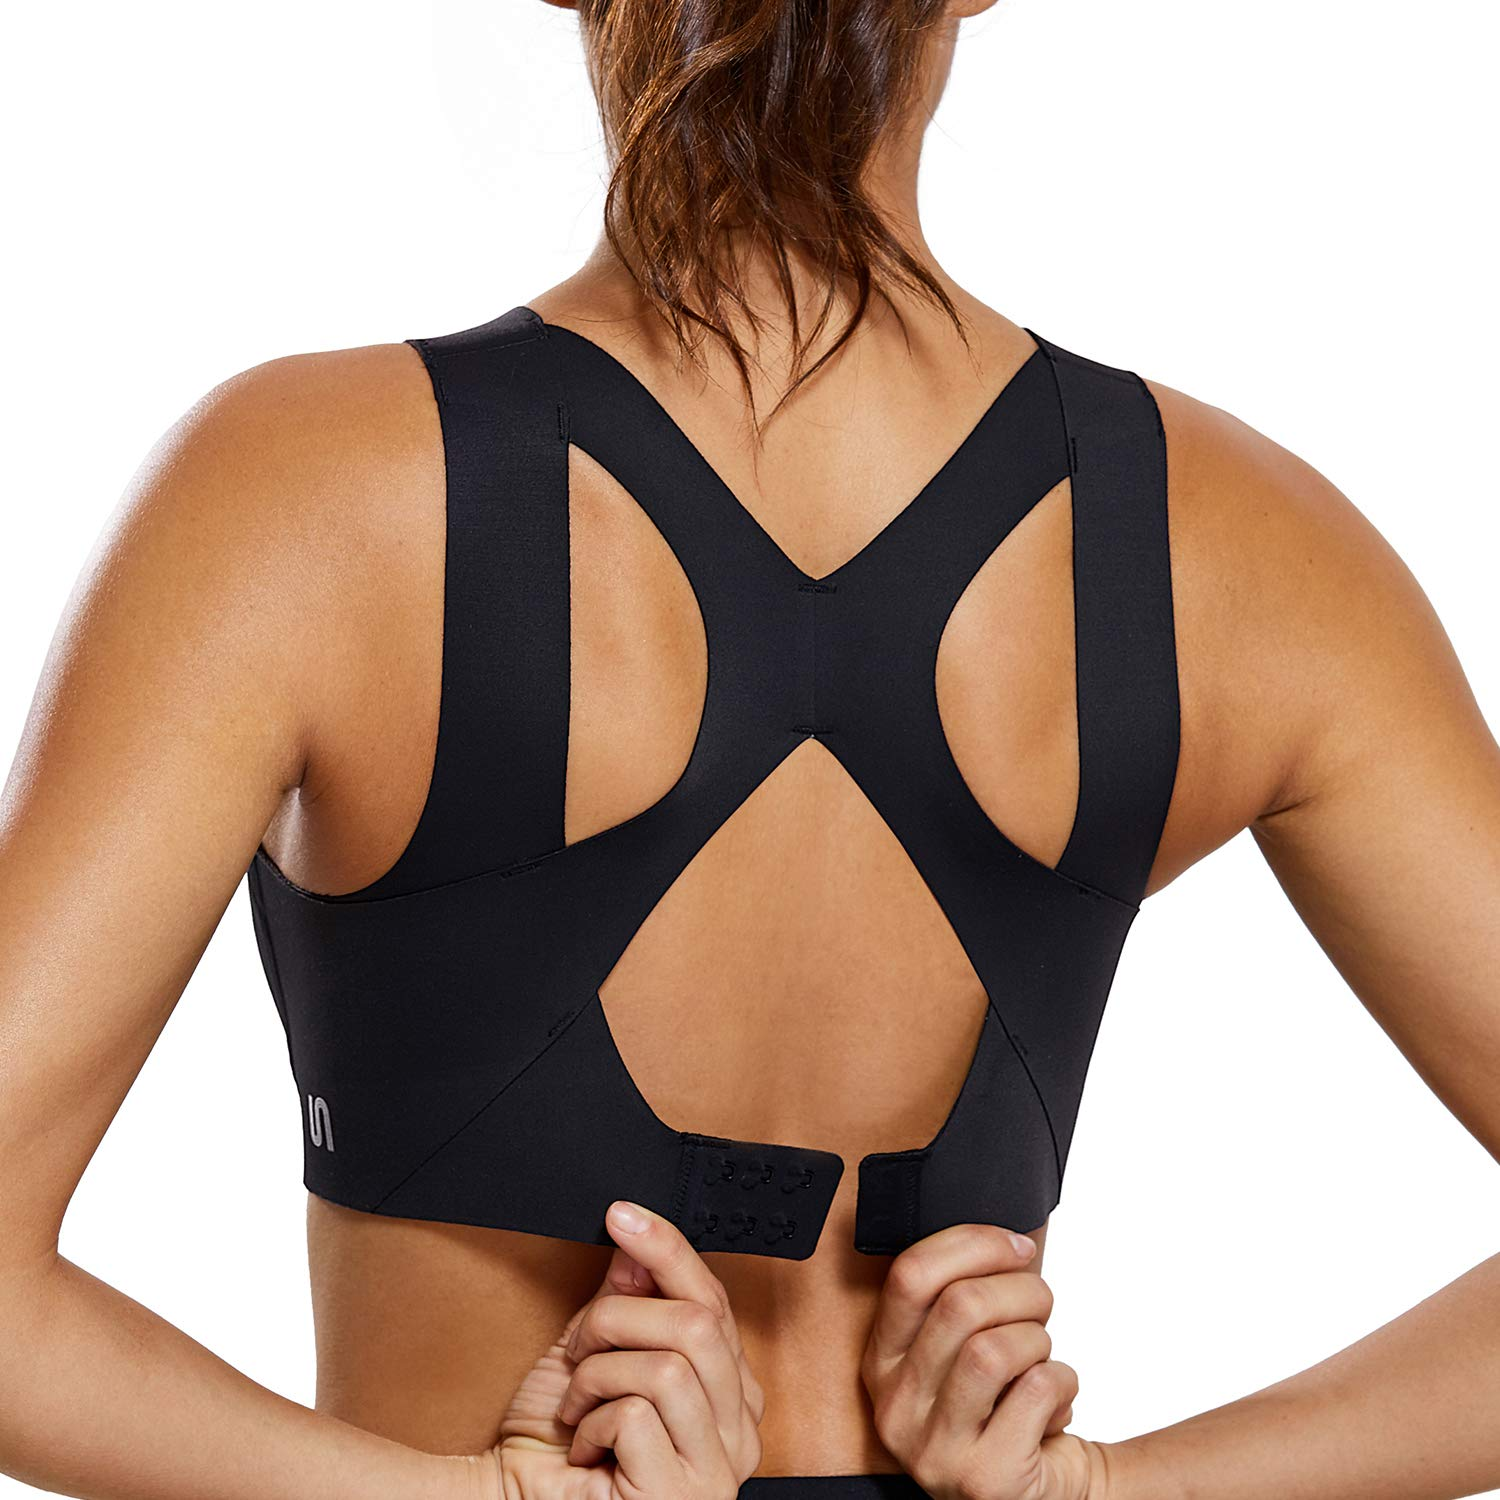 SYROKAN Women's High Impact Seamless Racerback Wirefree Sports Running Bra with Built-in Cups Black 36D by SYROKAN